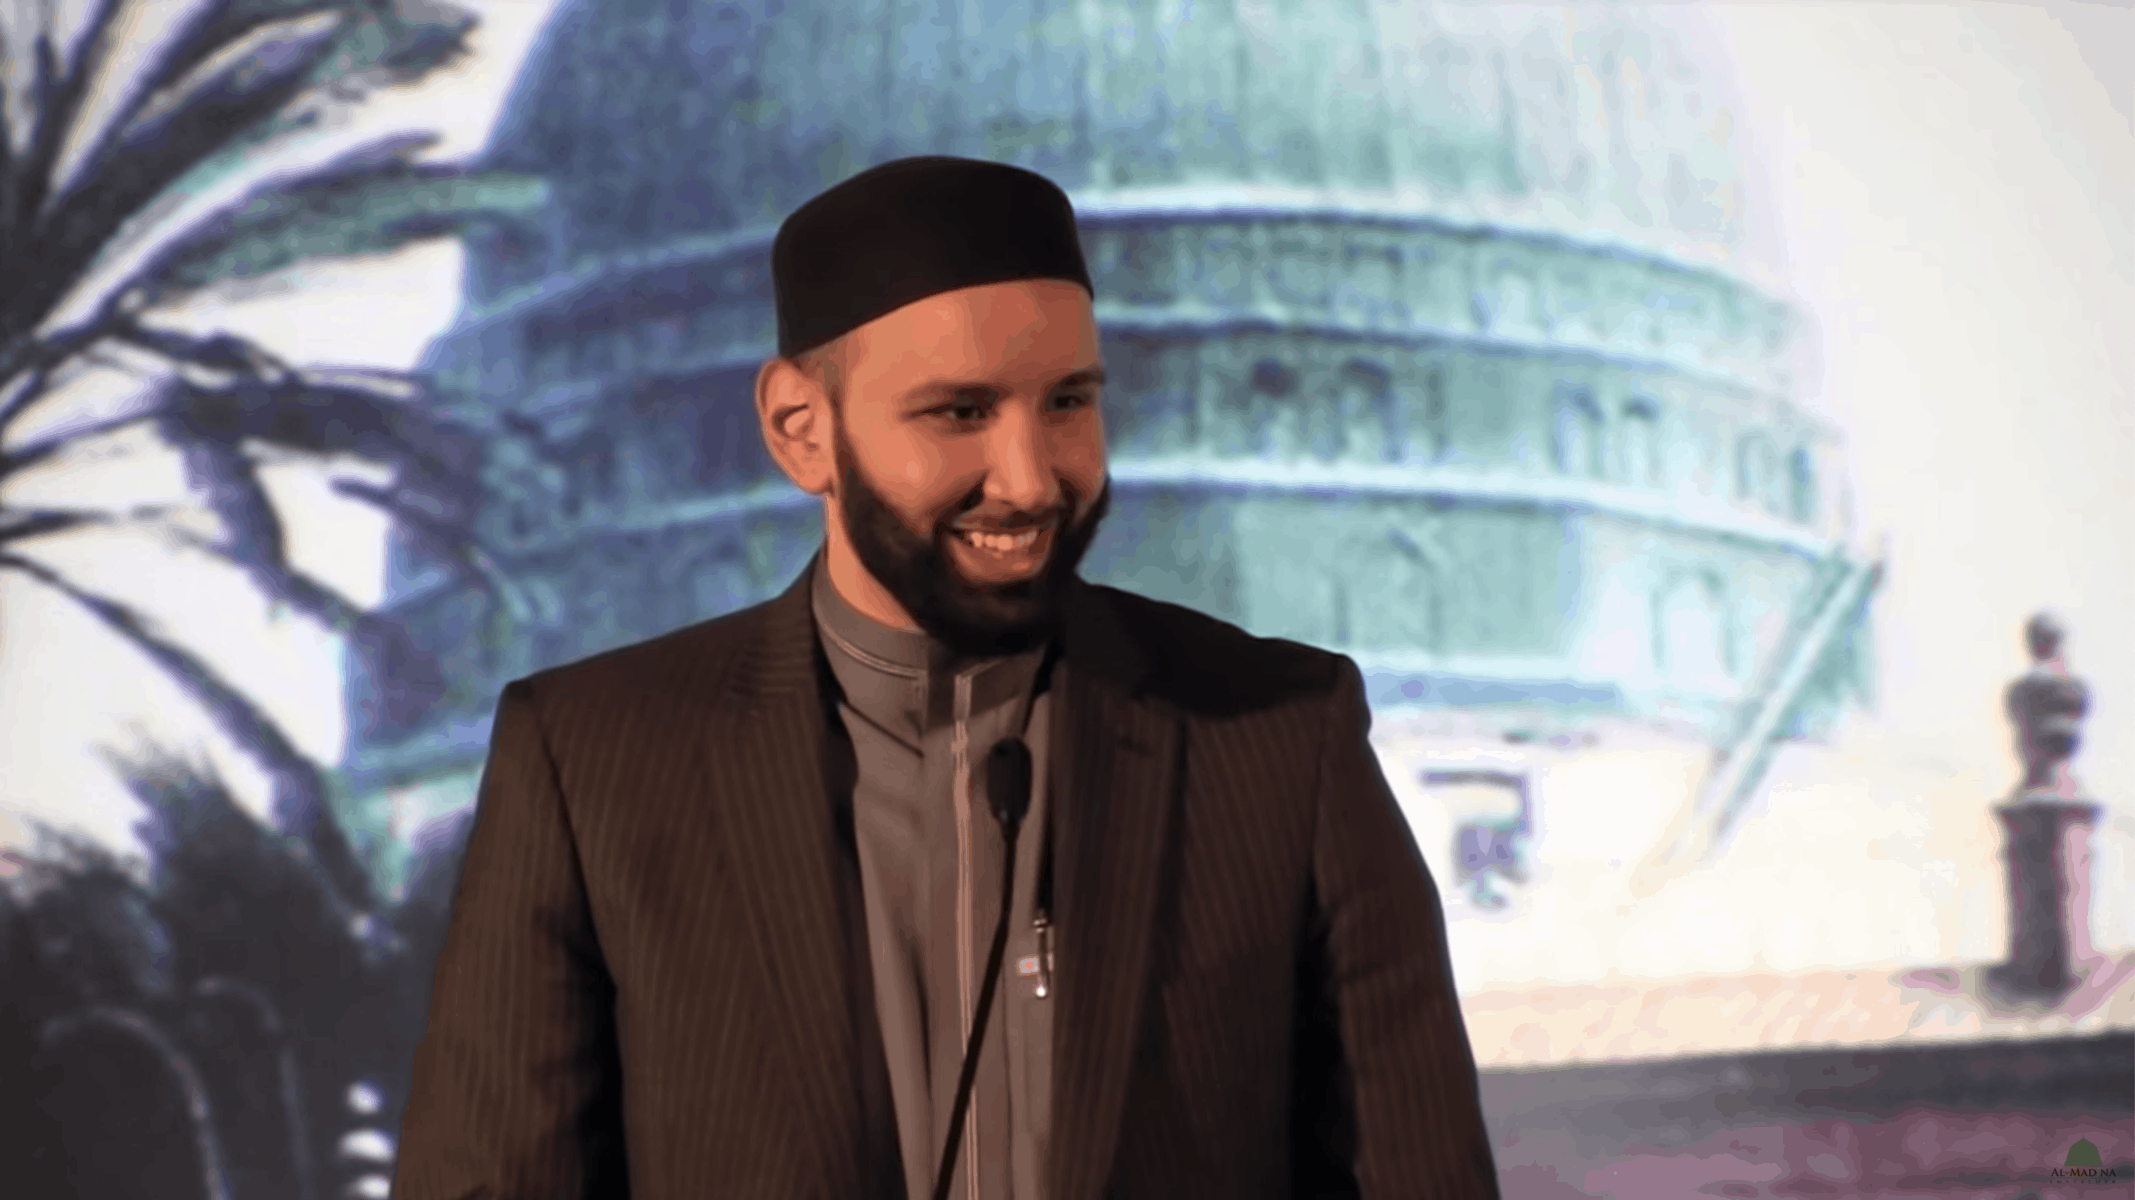 Omar Suleiman – Opening the Doors to the City of Light